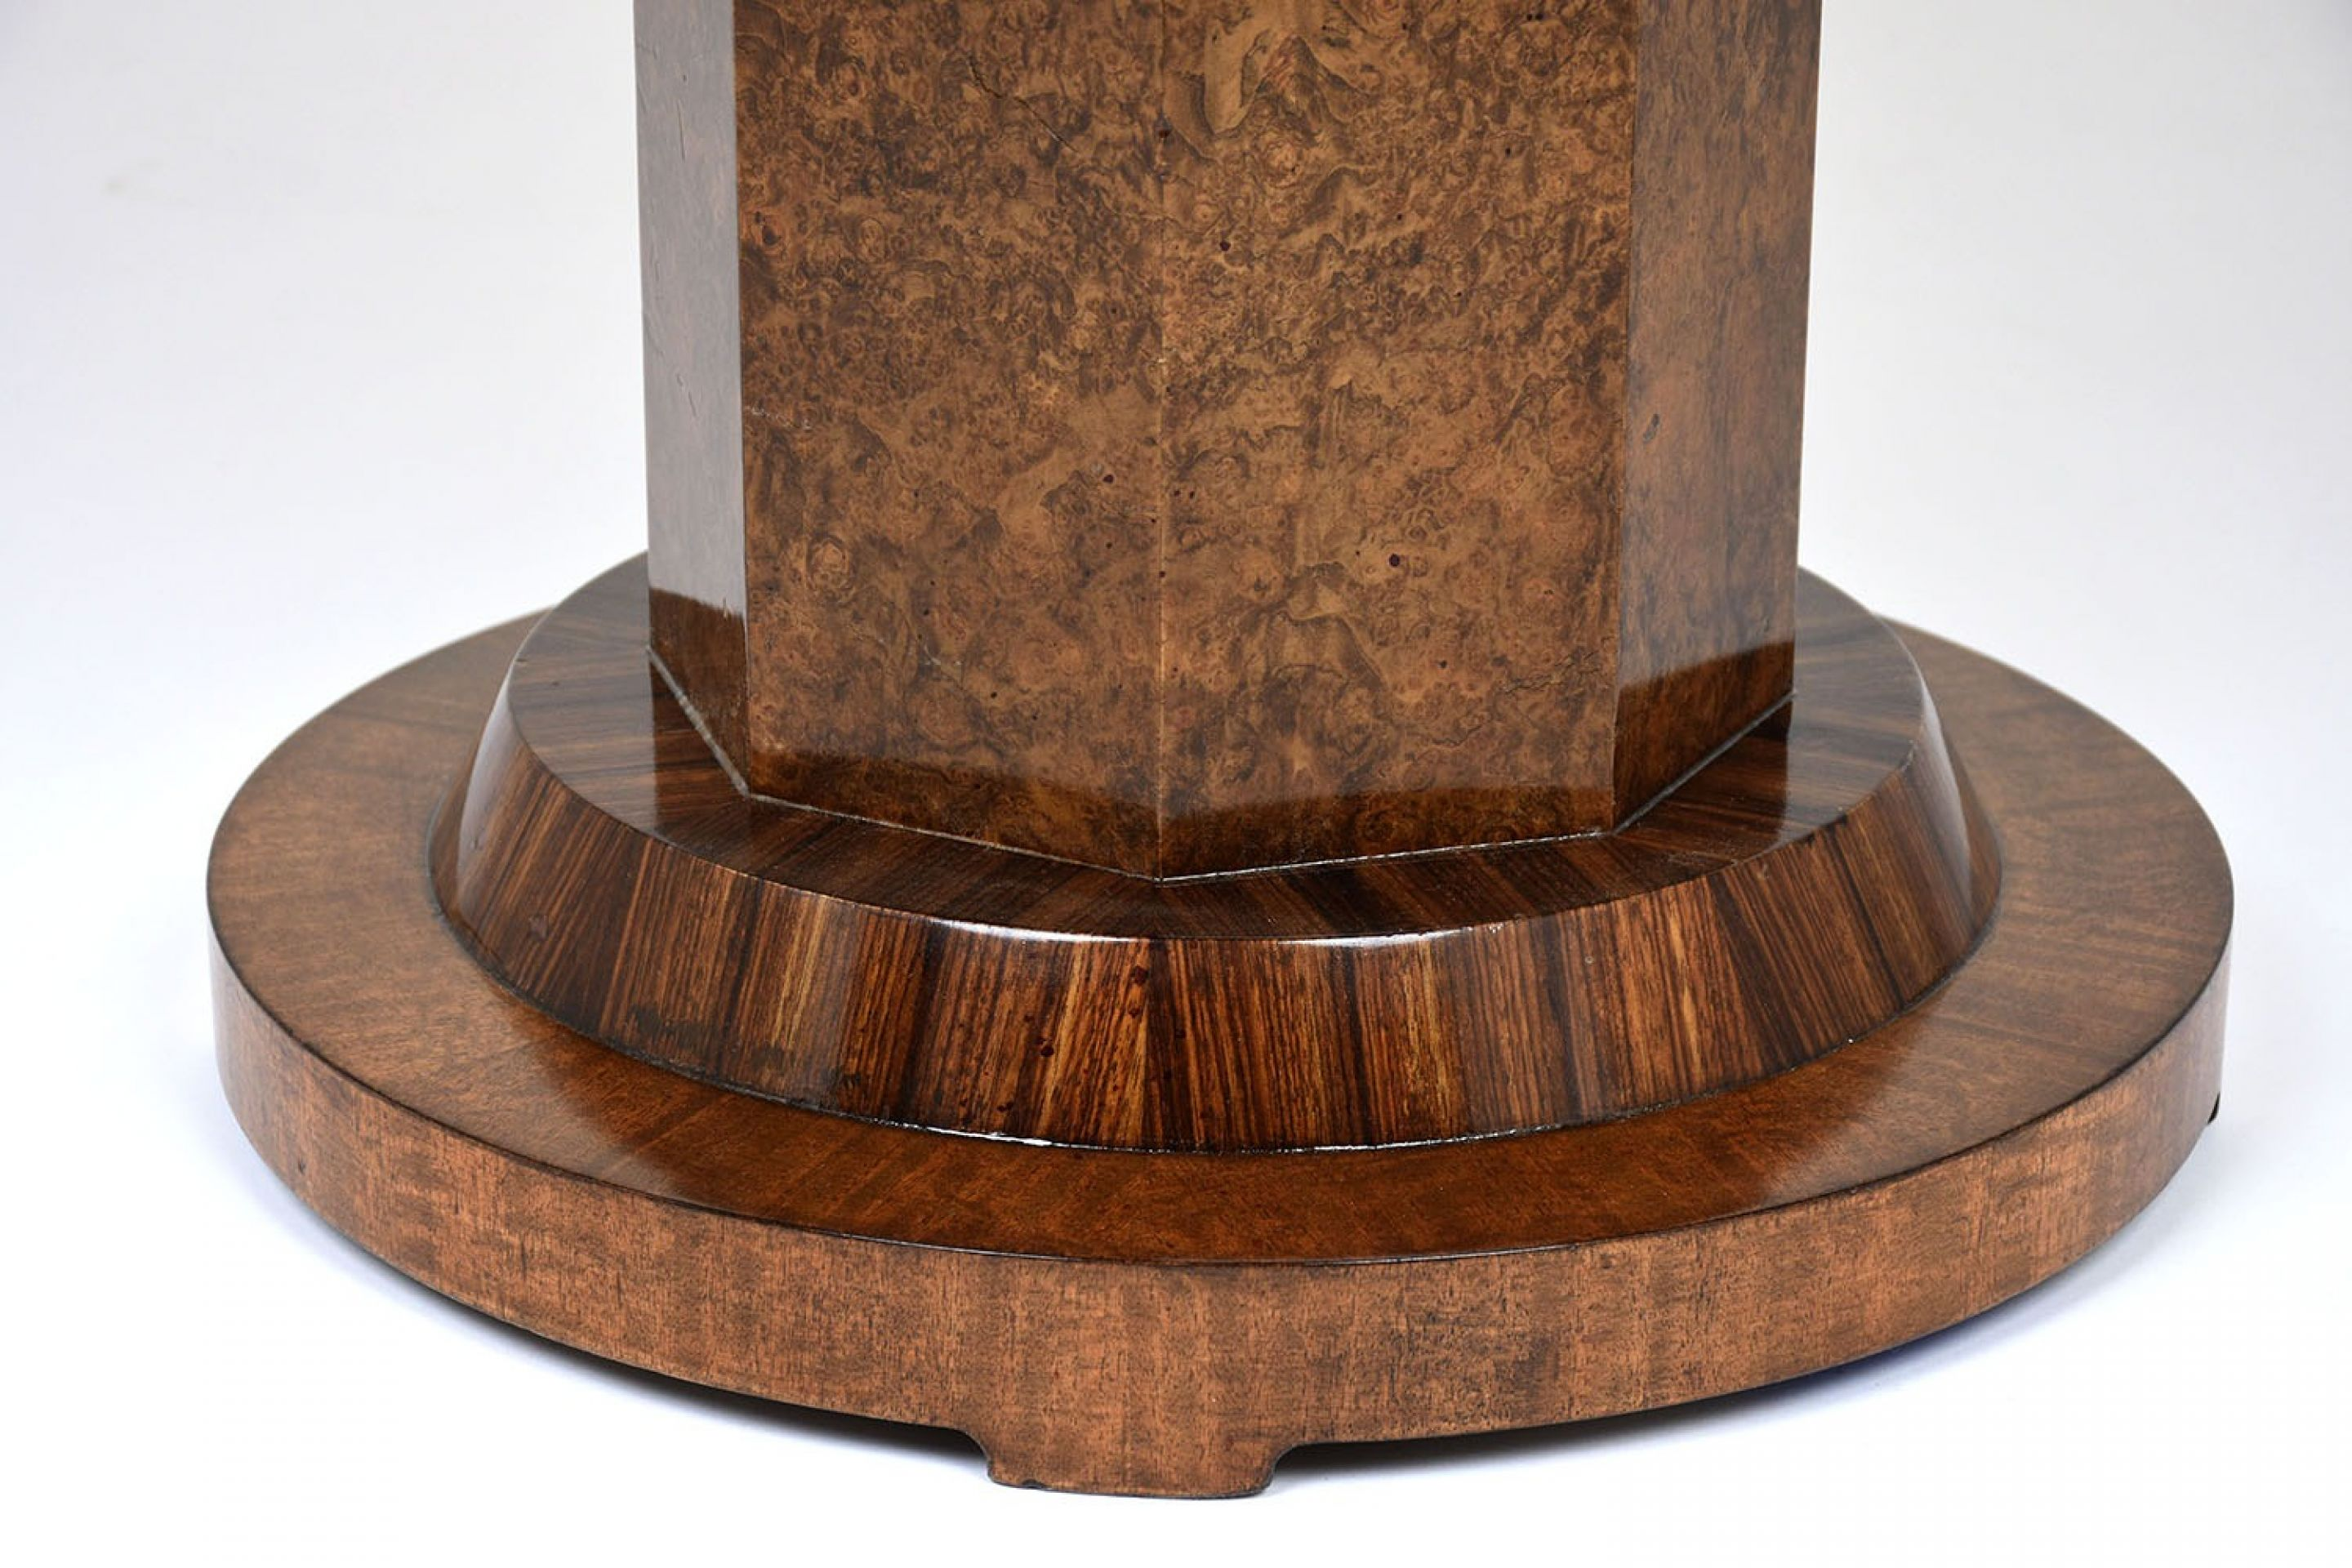 1960's French Art Deco-style Round Center Table